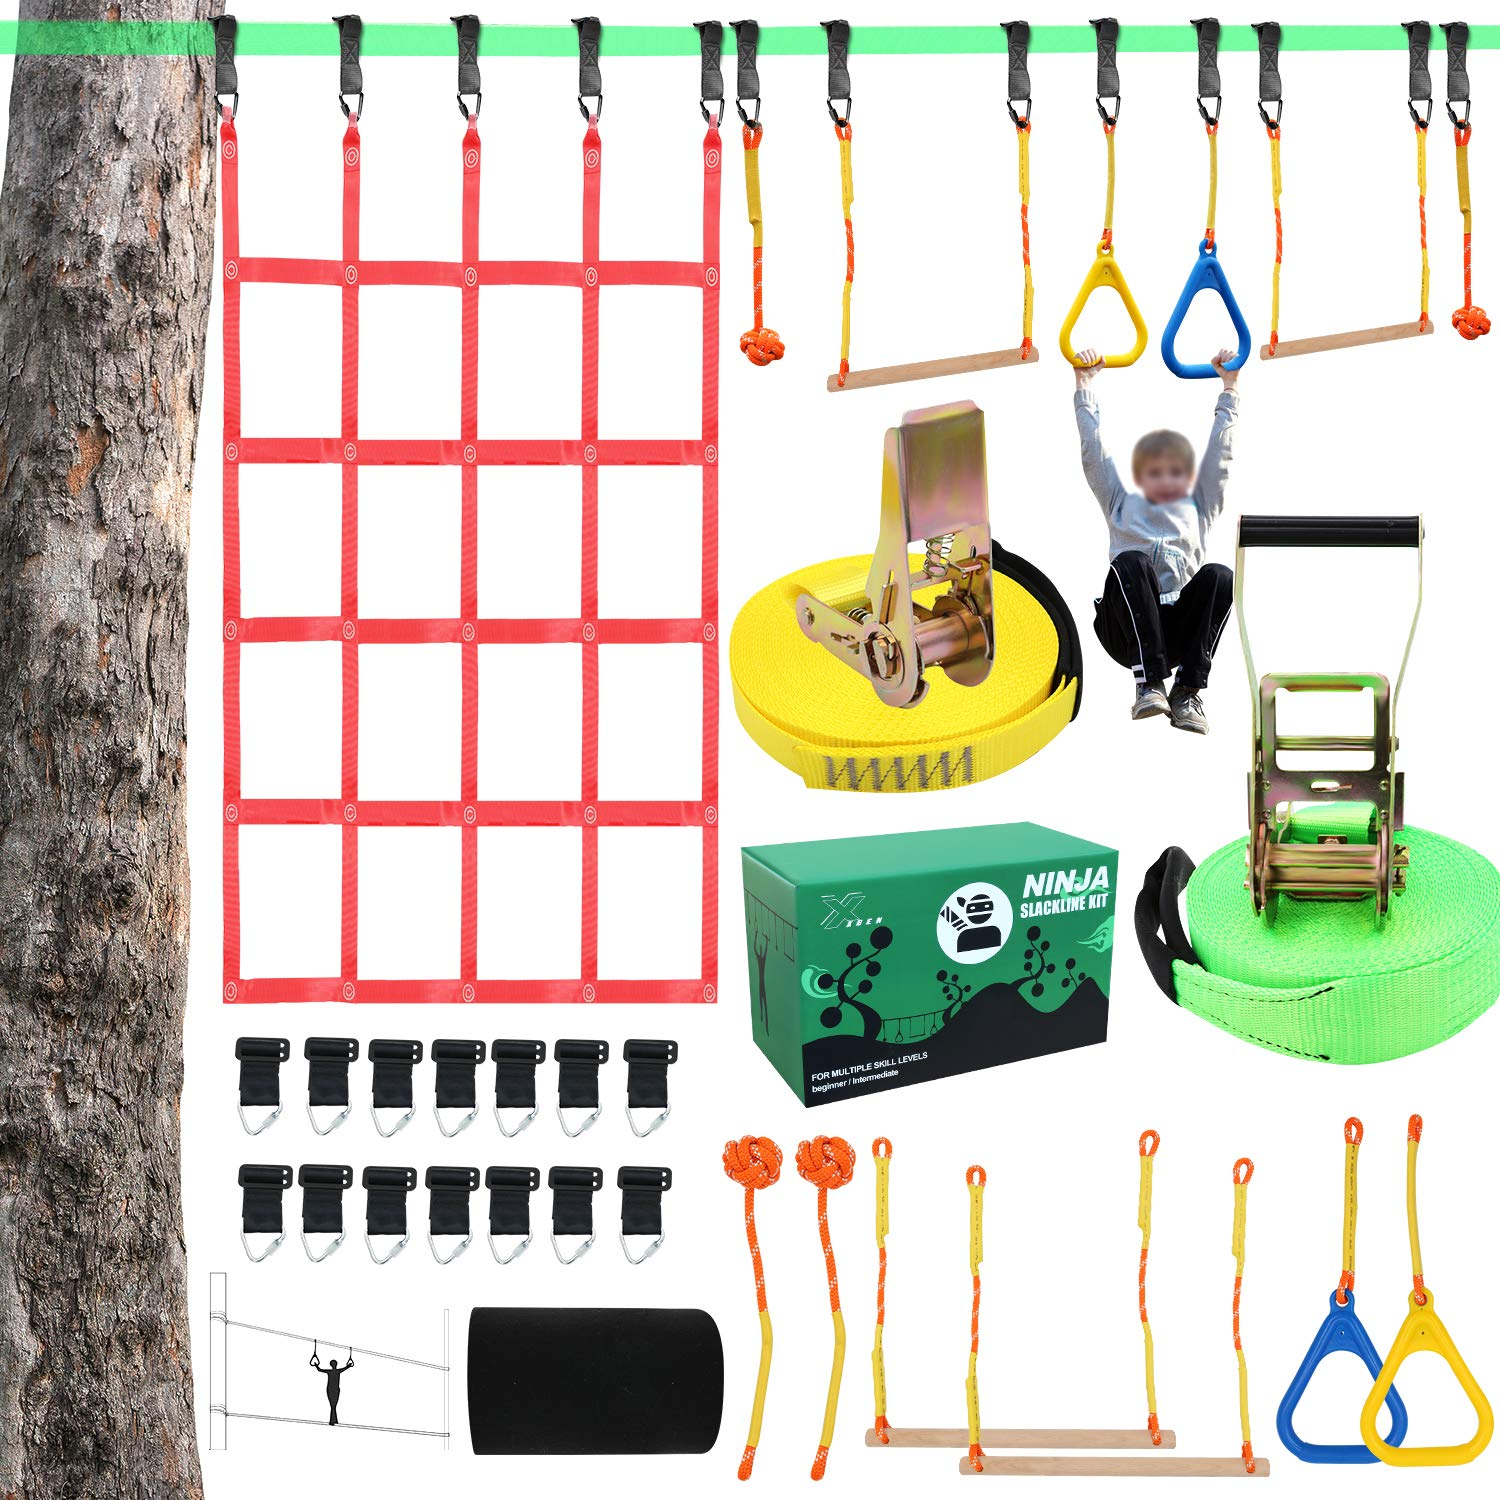 """X XBEN Obstacle Course Kids 50' Slackline Kit, Ninja Training Equipment for Adult, Come with Jungle Gym Monkey Bars, 78.7"""" 47.2"""" Climbing Net, Gymnastic Bar"""